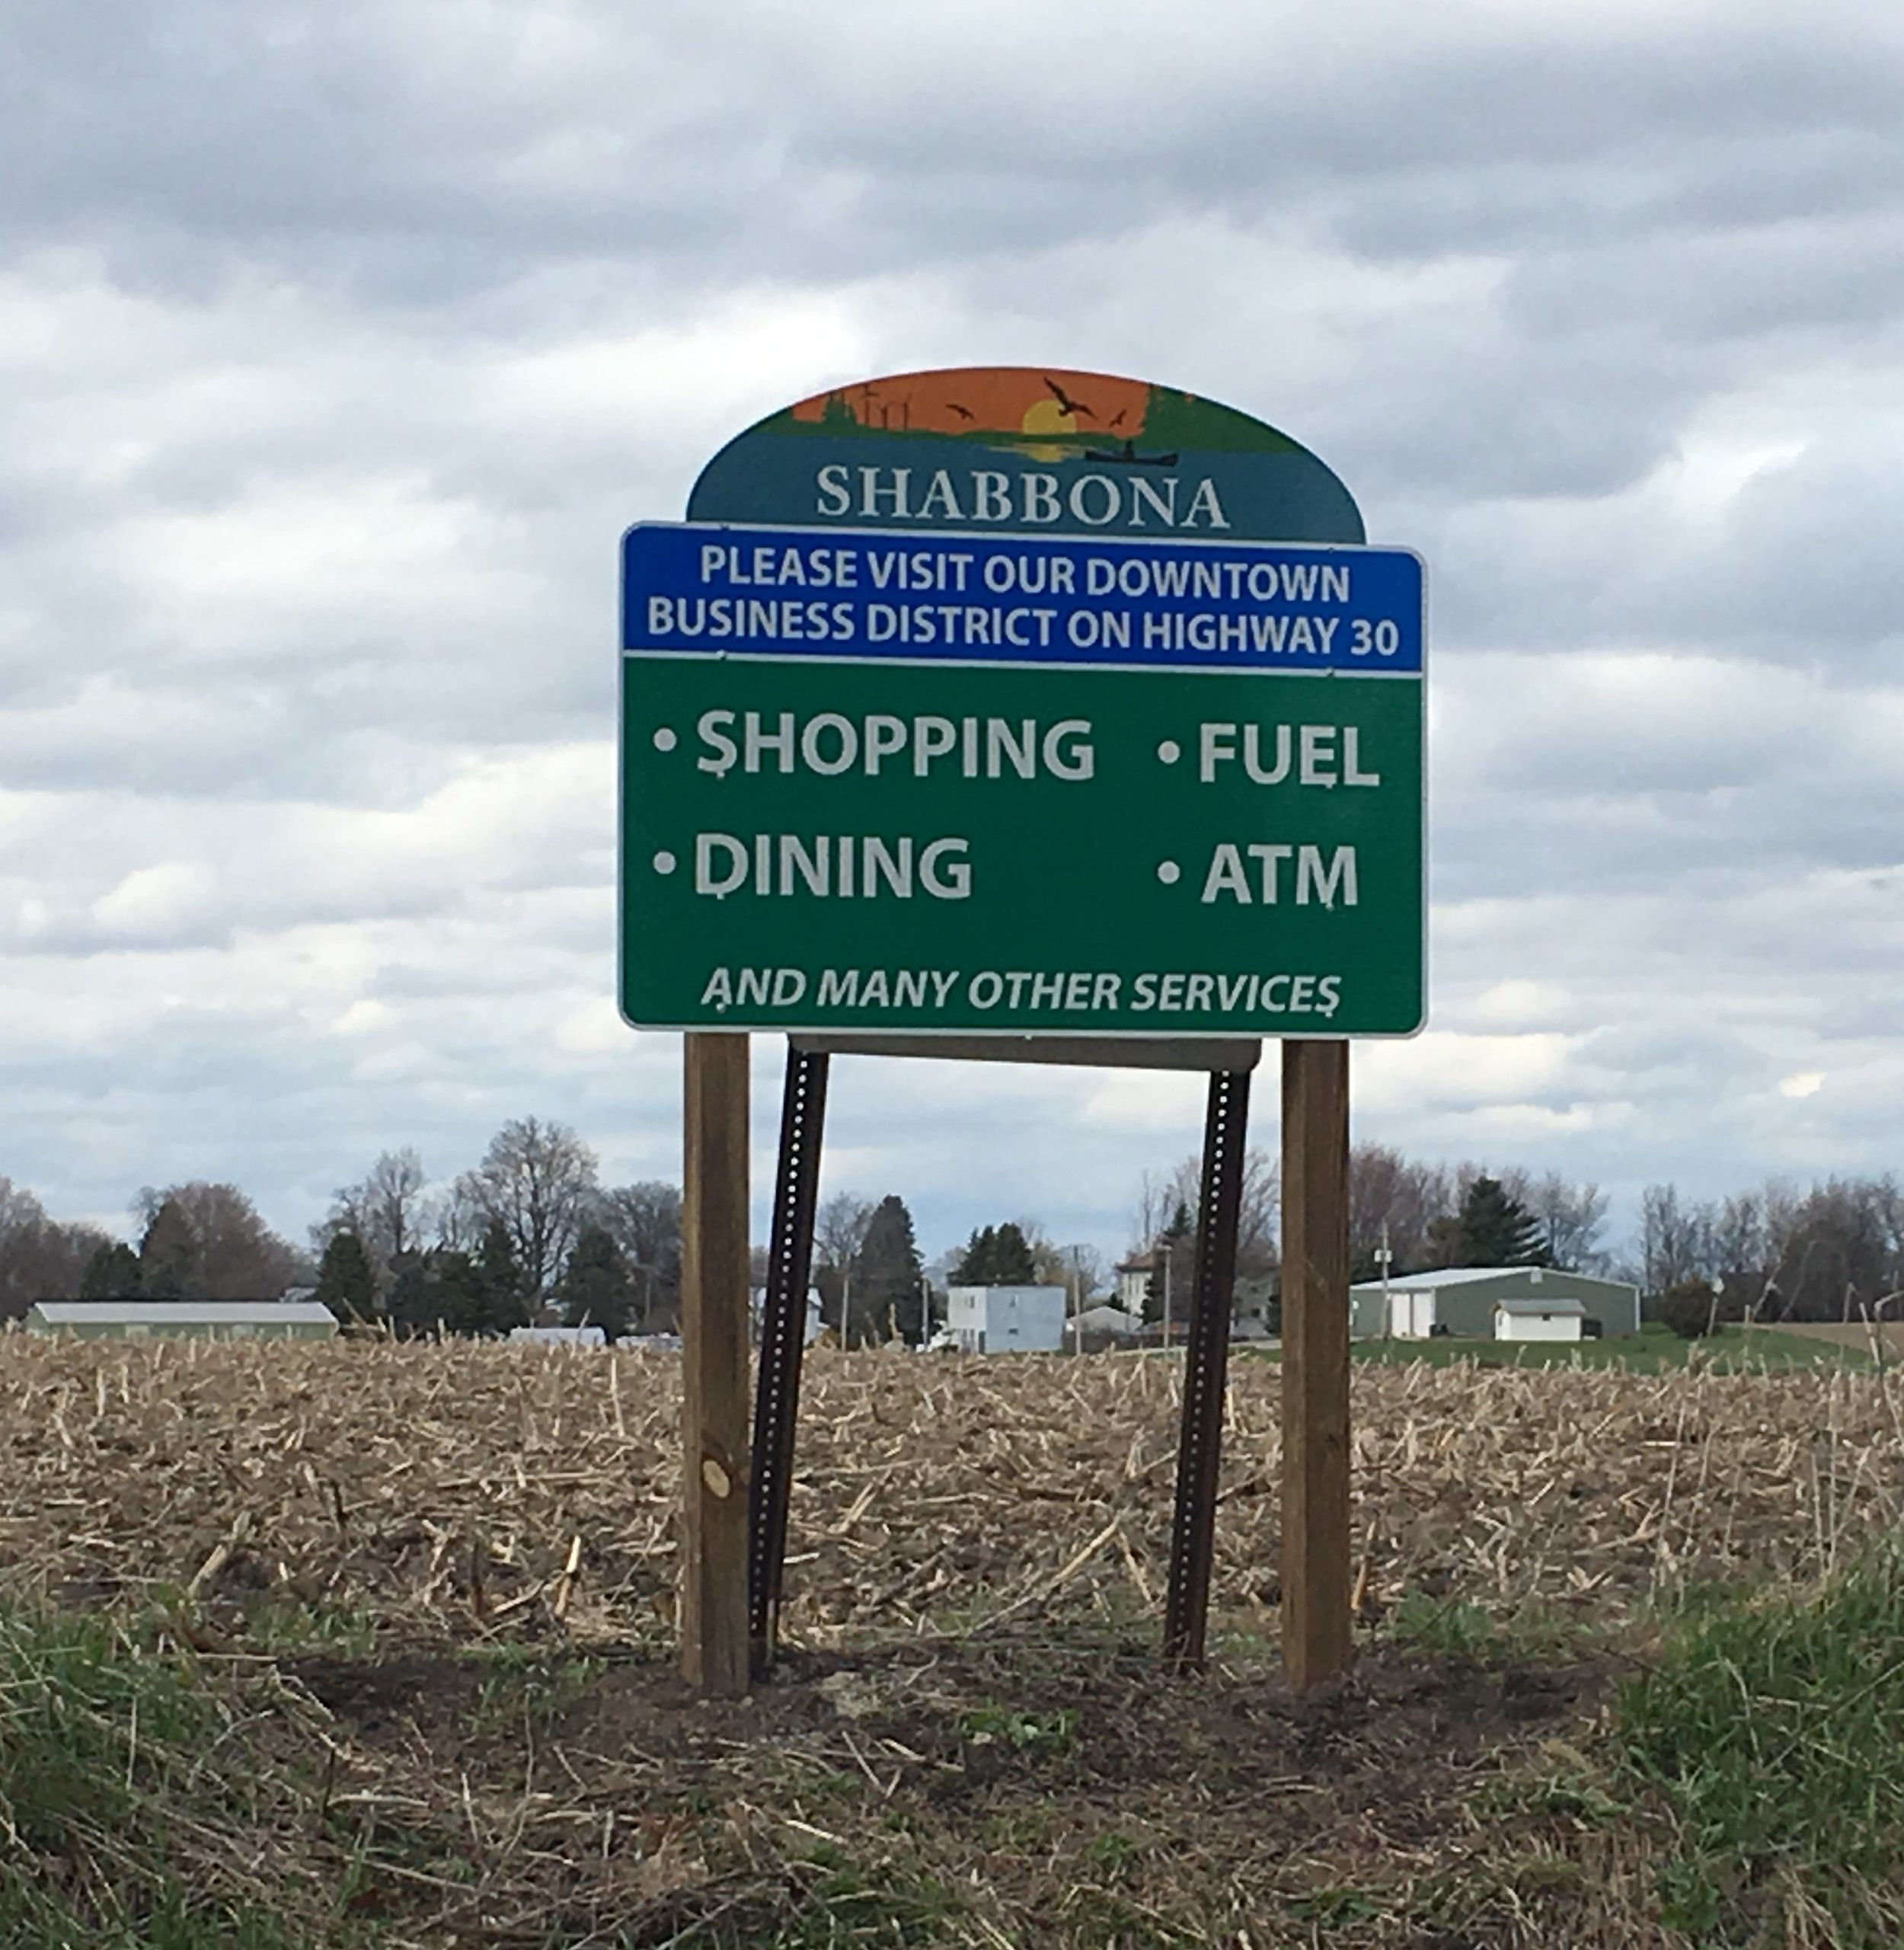 2019 Wayfinding signs - Pictured sign was installed on Preserve Road across from park entrance/exit